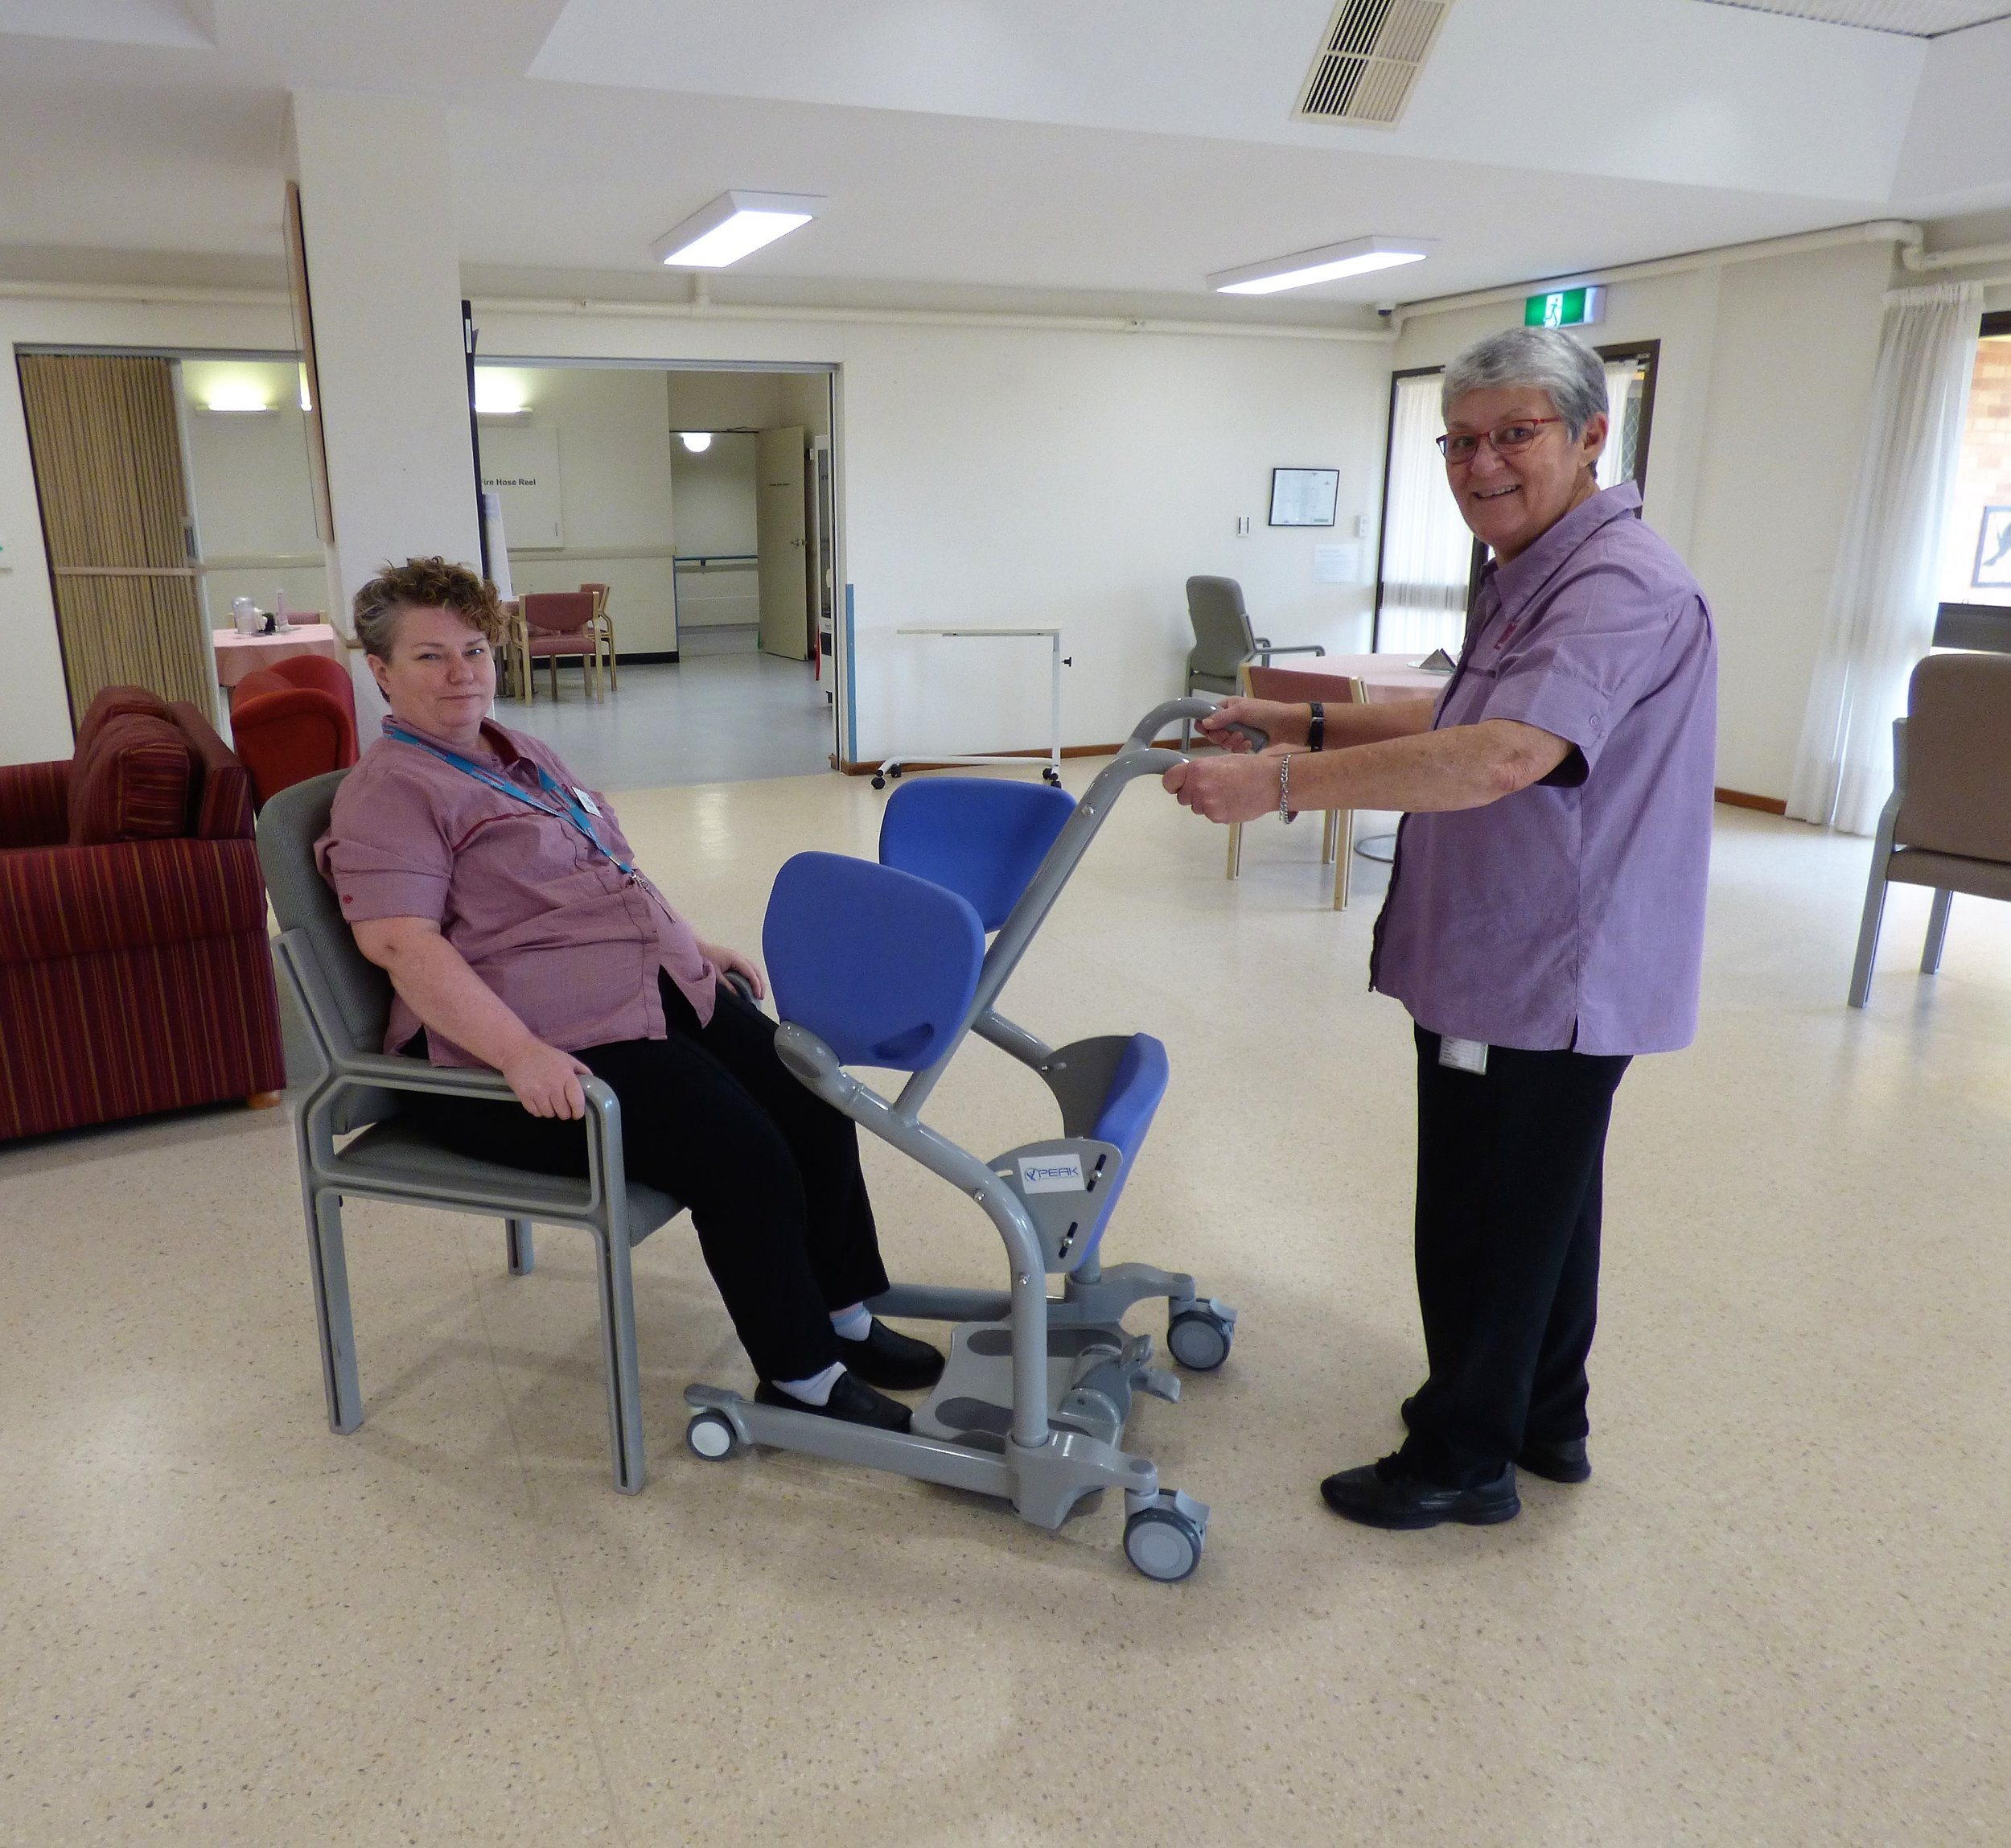 LHOC transfer assist trolley trial with Tina and Cheryl.jpg